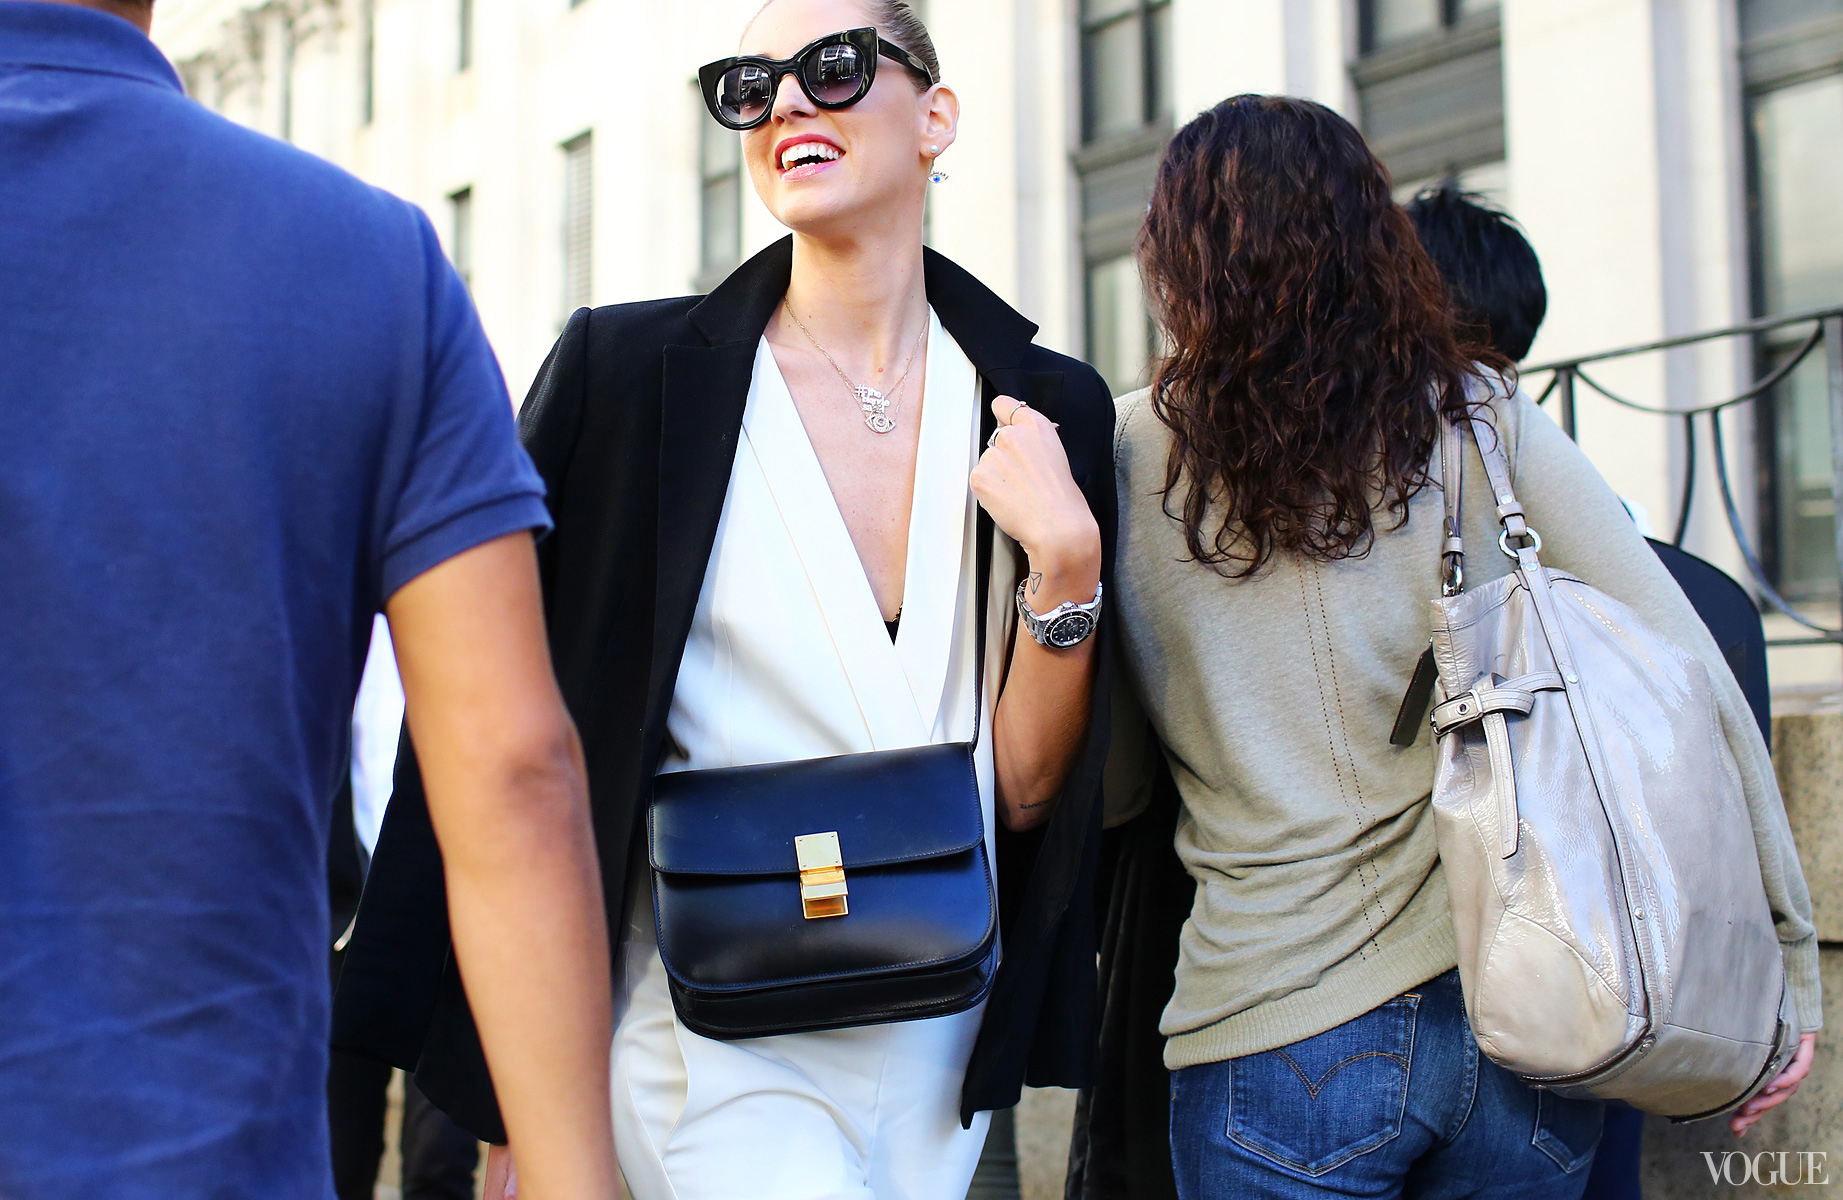 Celine box bag the covetable Celine fashion street style